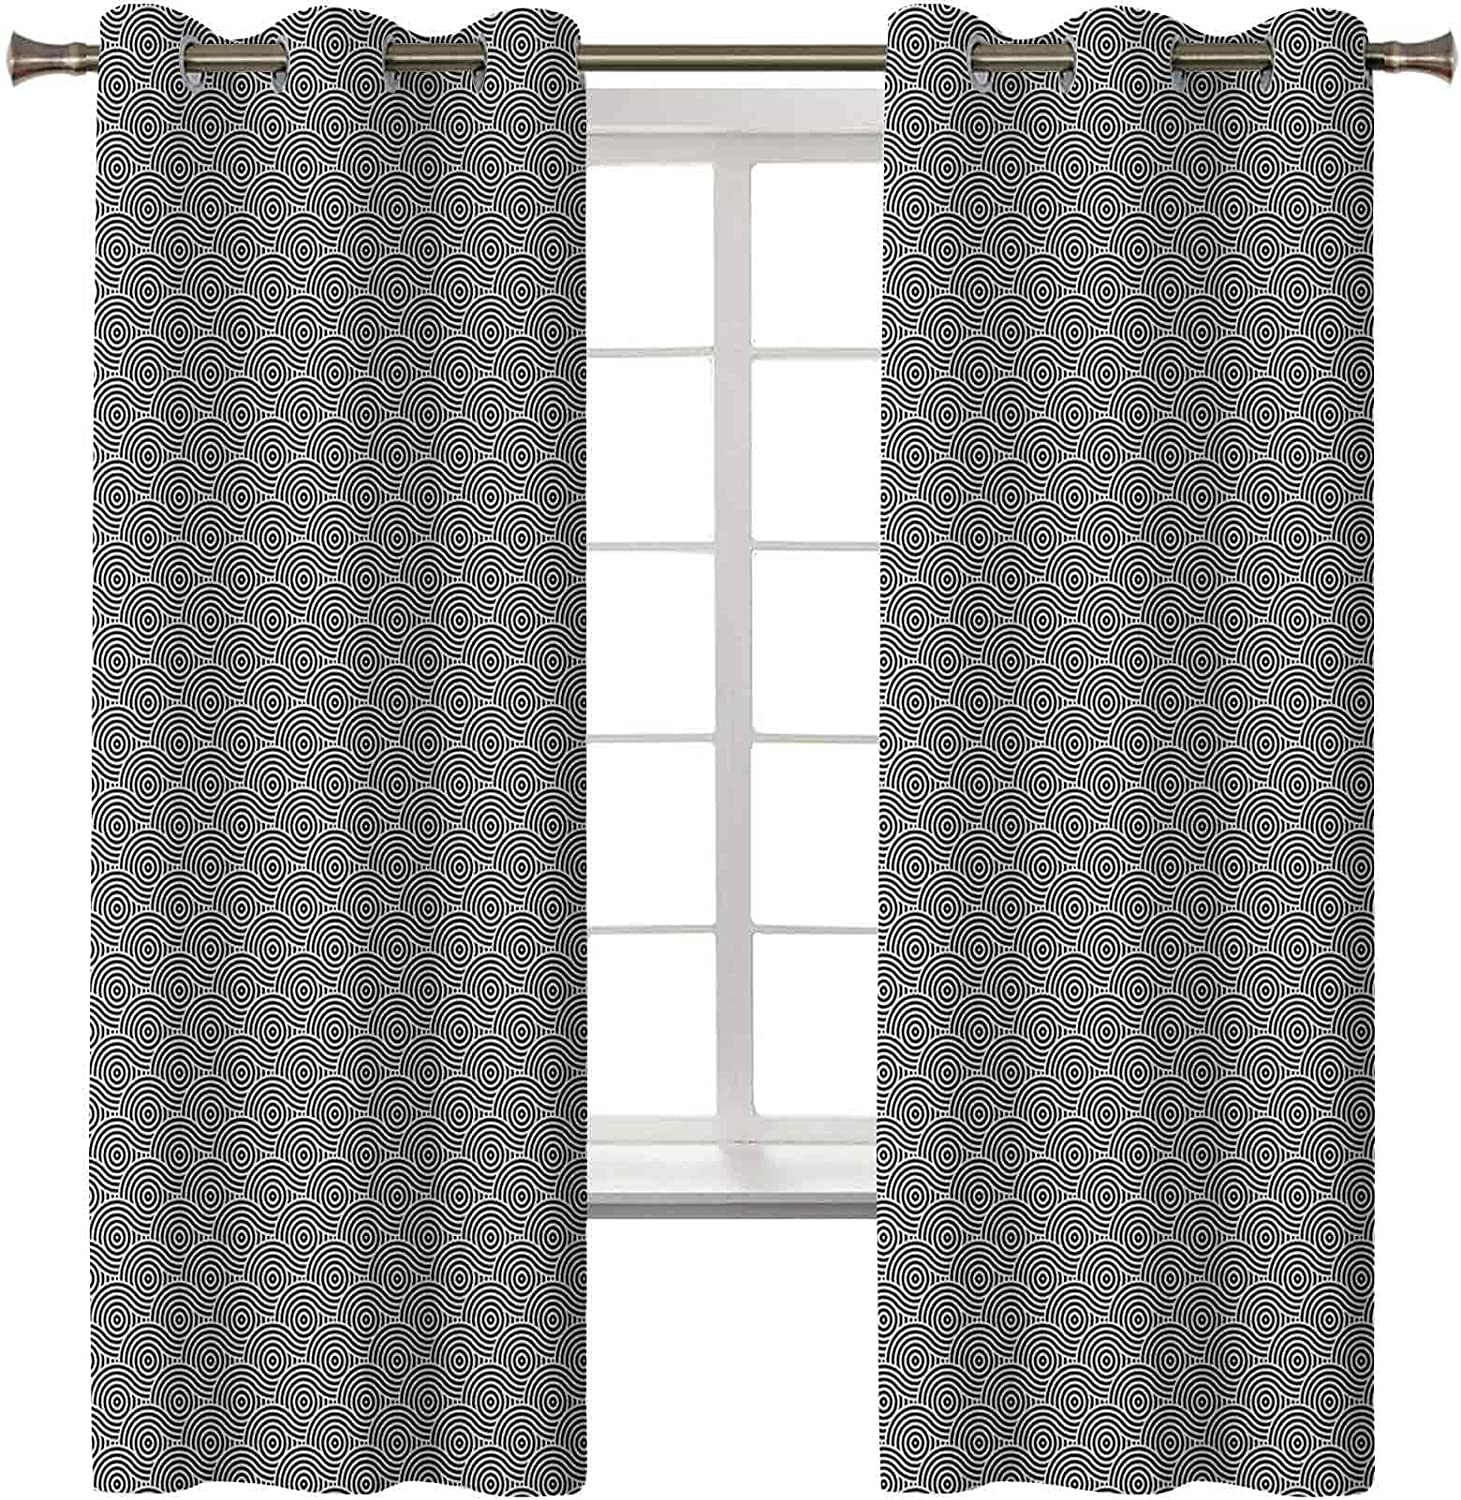 Abstract Sales Blackout Thermal free Curtains Modern Artwork Round Spir of